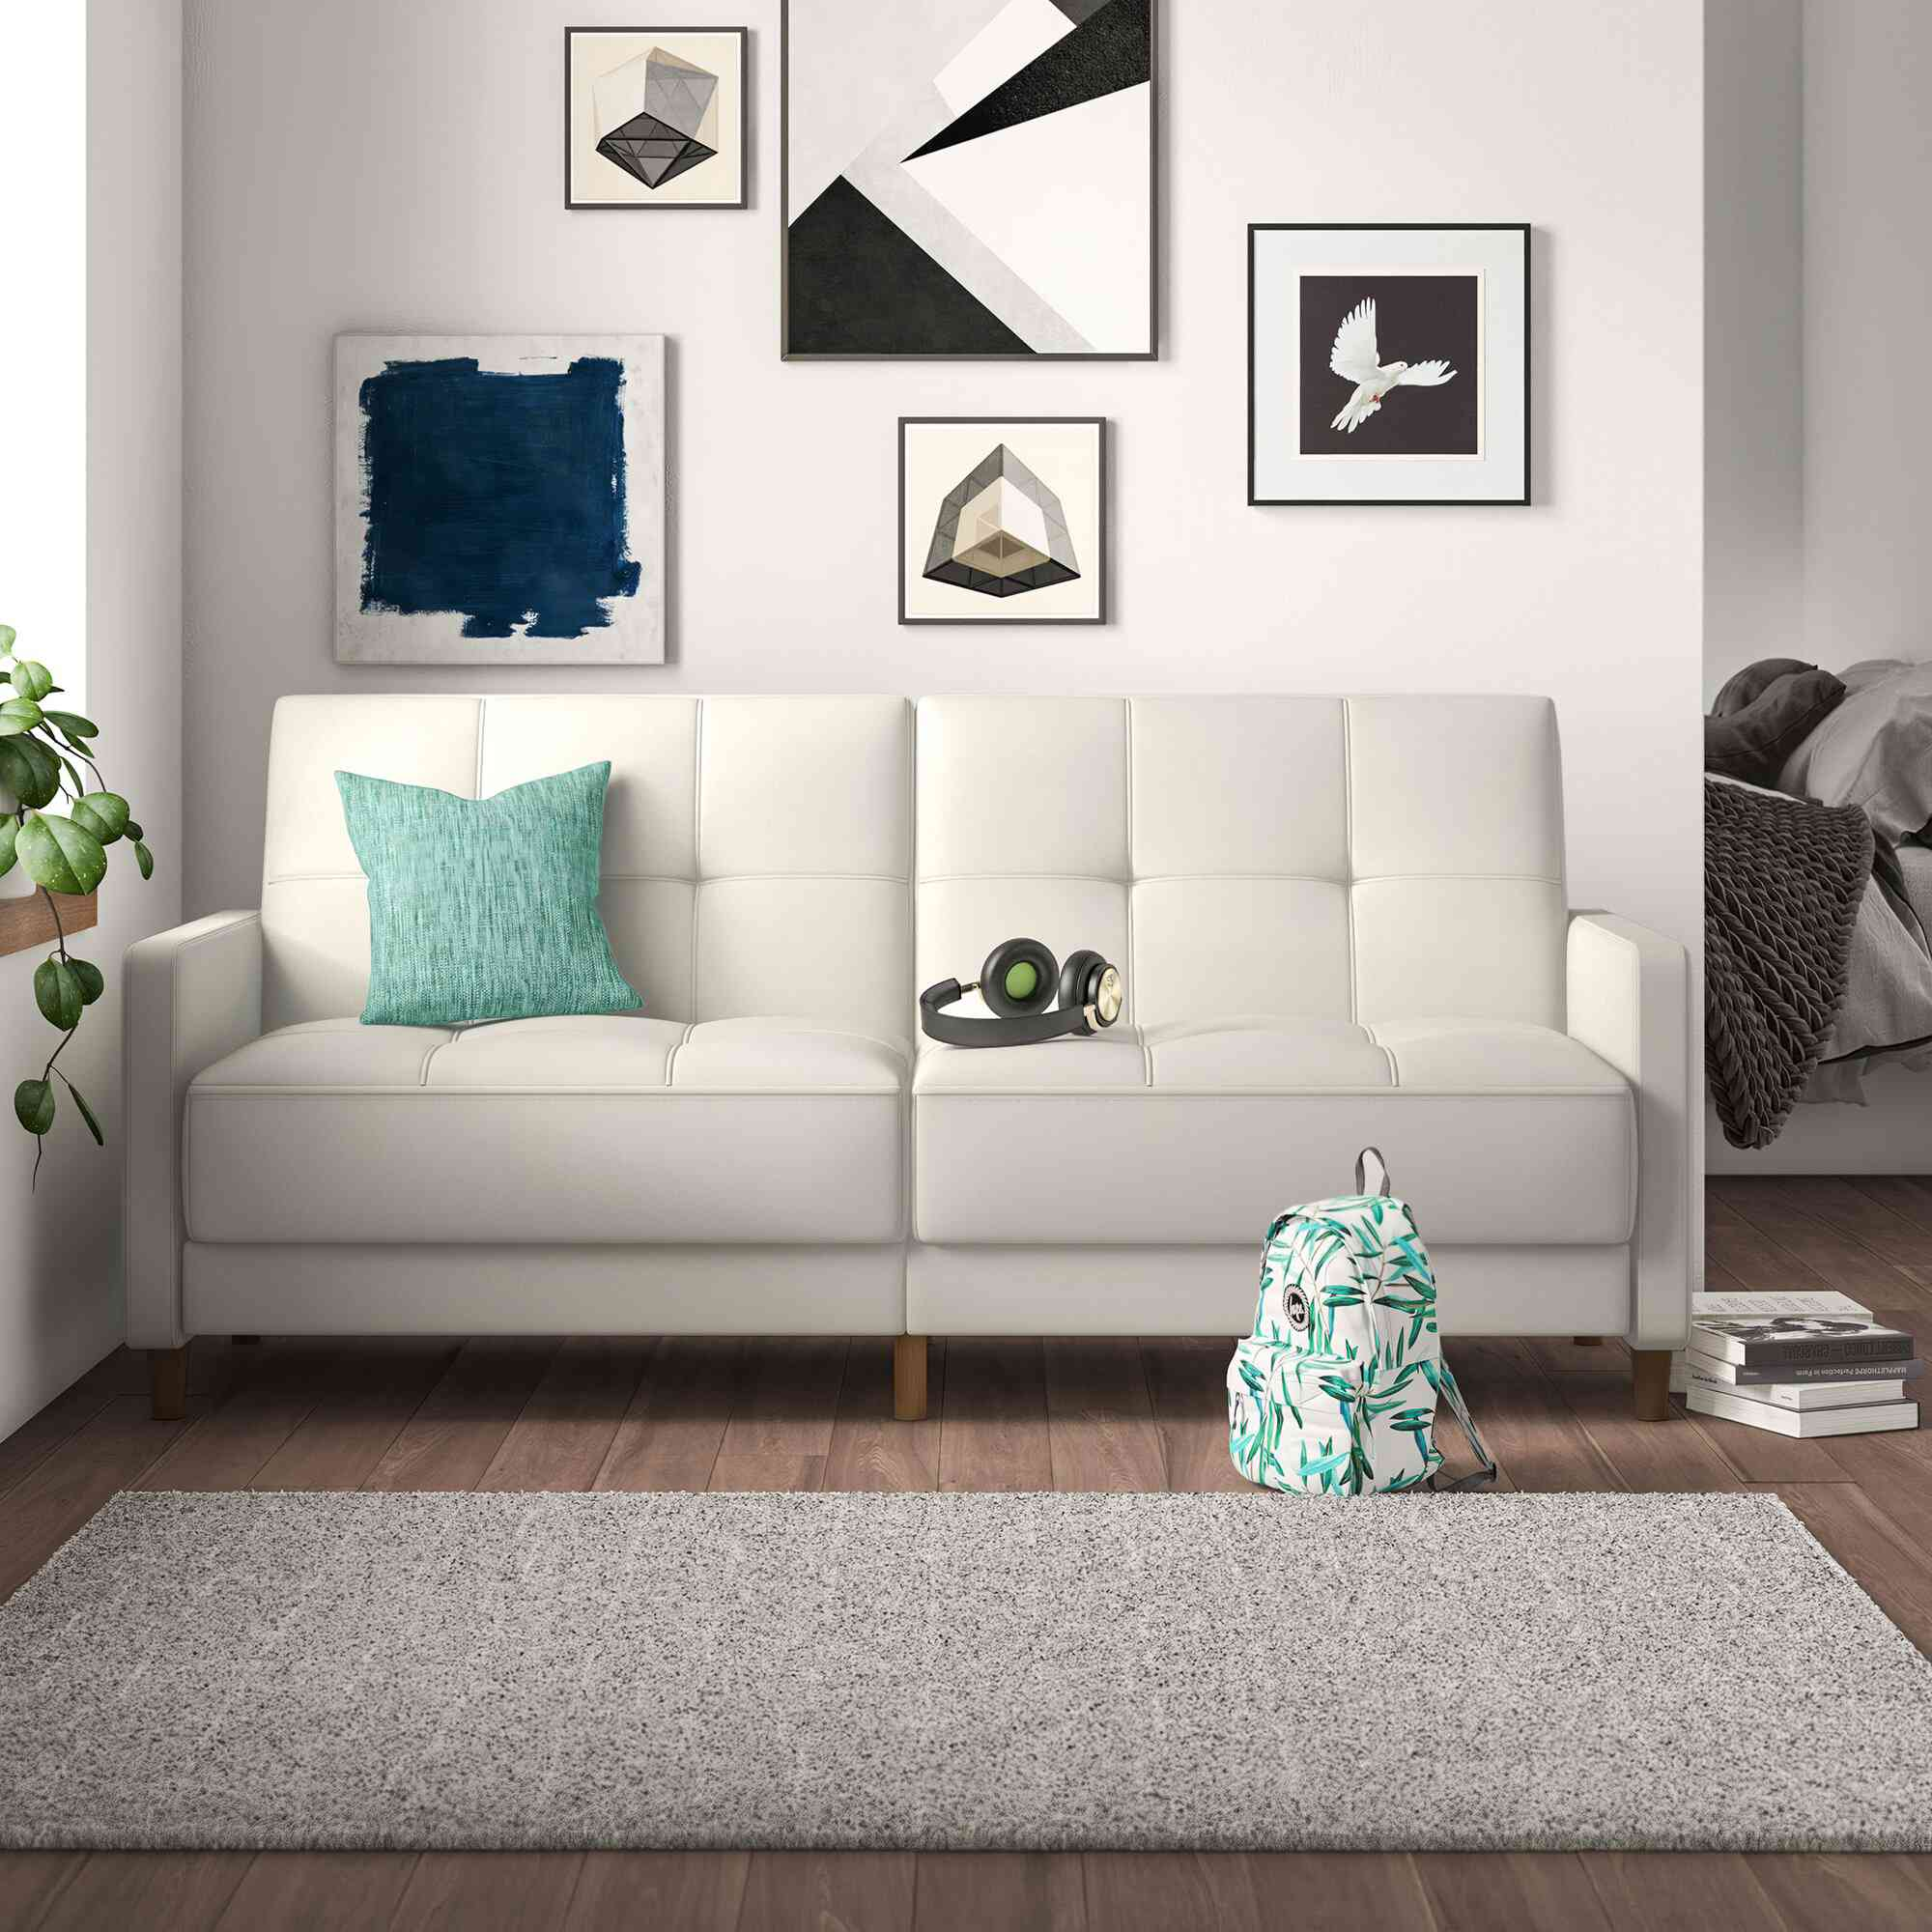 The 9 Best Small Sleeper Sofas Of 2021, Apartment Therapy Small Sleeper Sofa